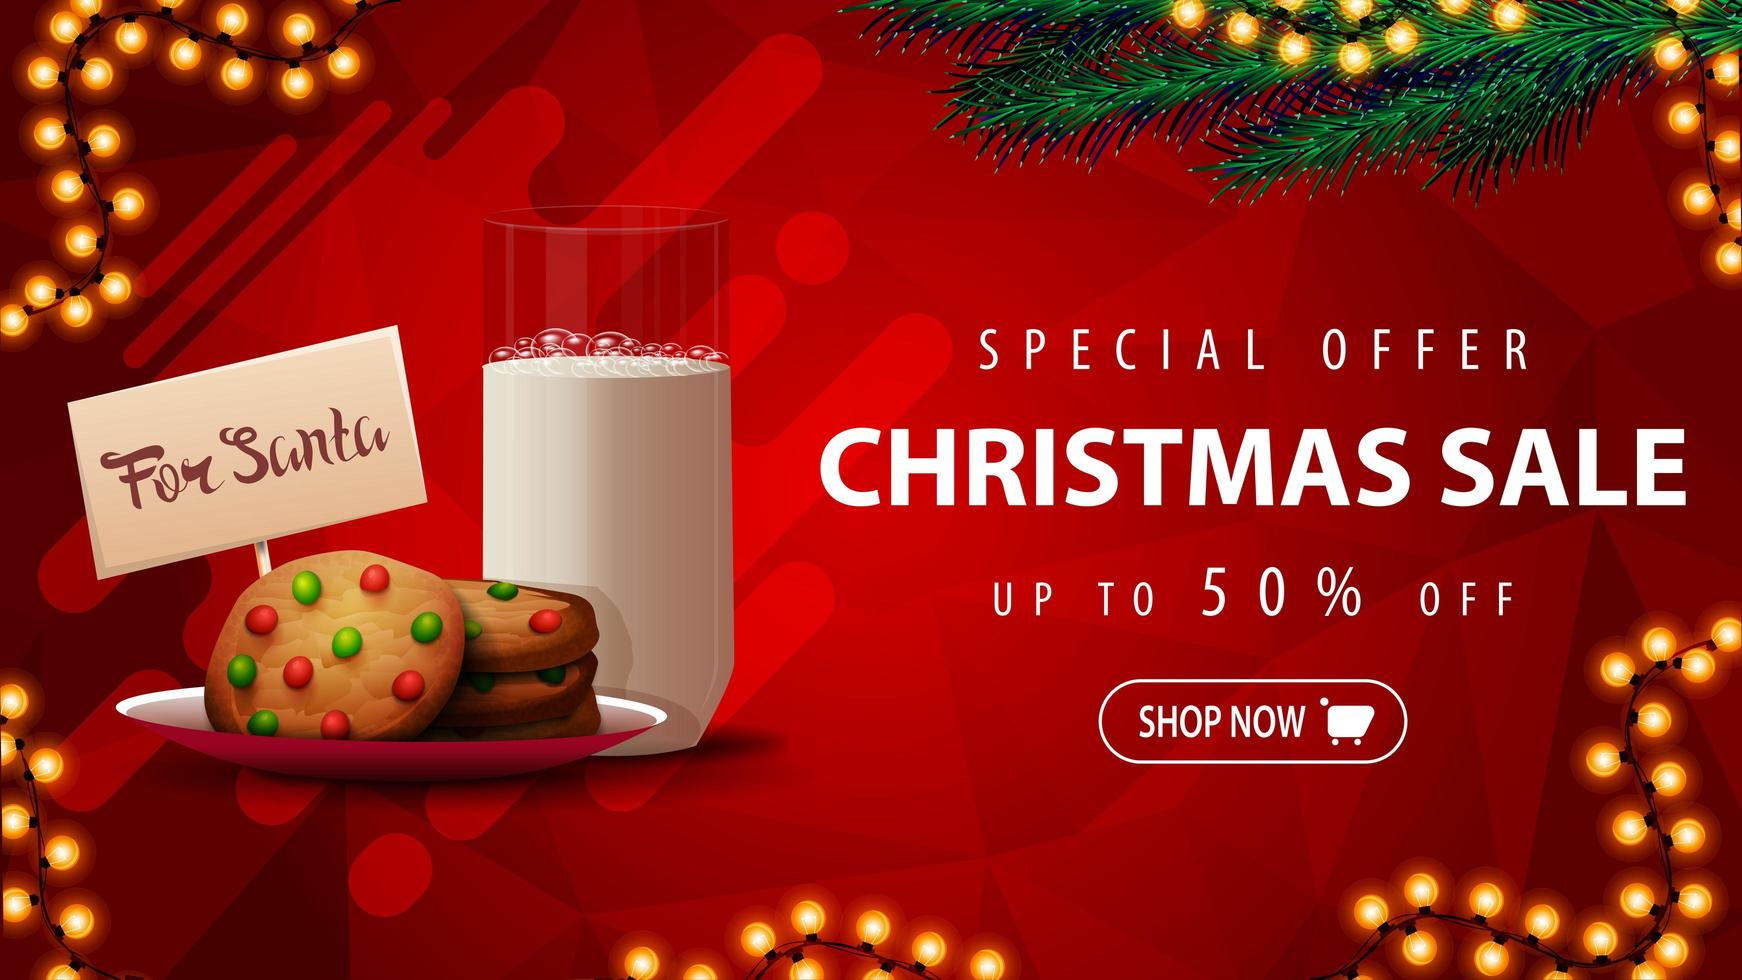 Special offer, Christmas sale, up to 50 off, beautiful red discount banner with Christmas tree branches, garland and cookies with a glass of milk for Santa Claus vector